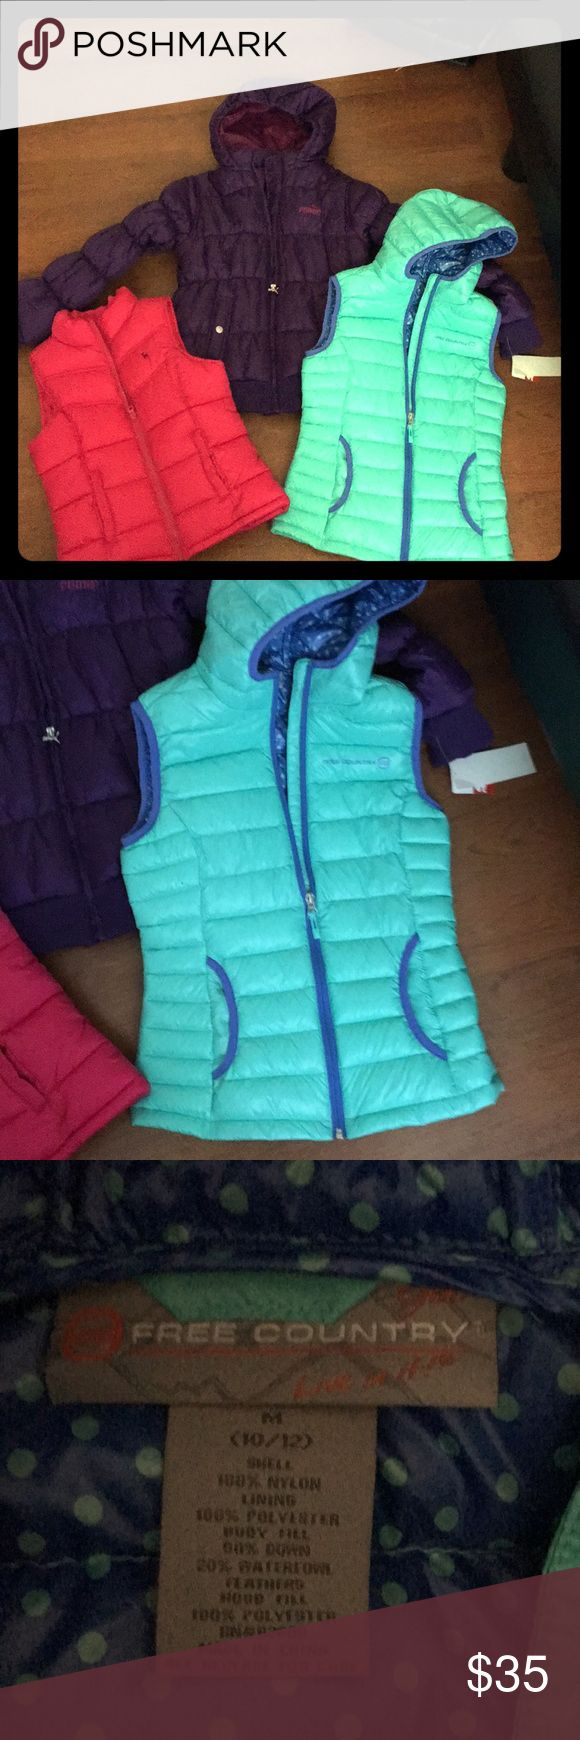 Flash sale Unbelievable winter puffer bundle. Brand new with tags Puma winter puffer coat. Size girls large 12-14. Almost new teal and purple free country size med 10-12 girls like new, and last adorable hot pink puffer vest, old navy brand. Size girls medium 10-12 like new Puma Jackets & Coats Puffers